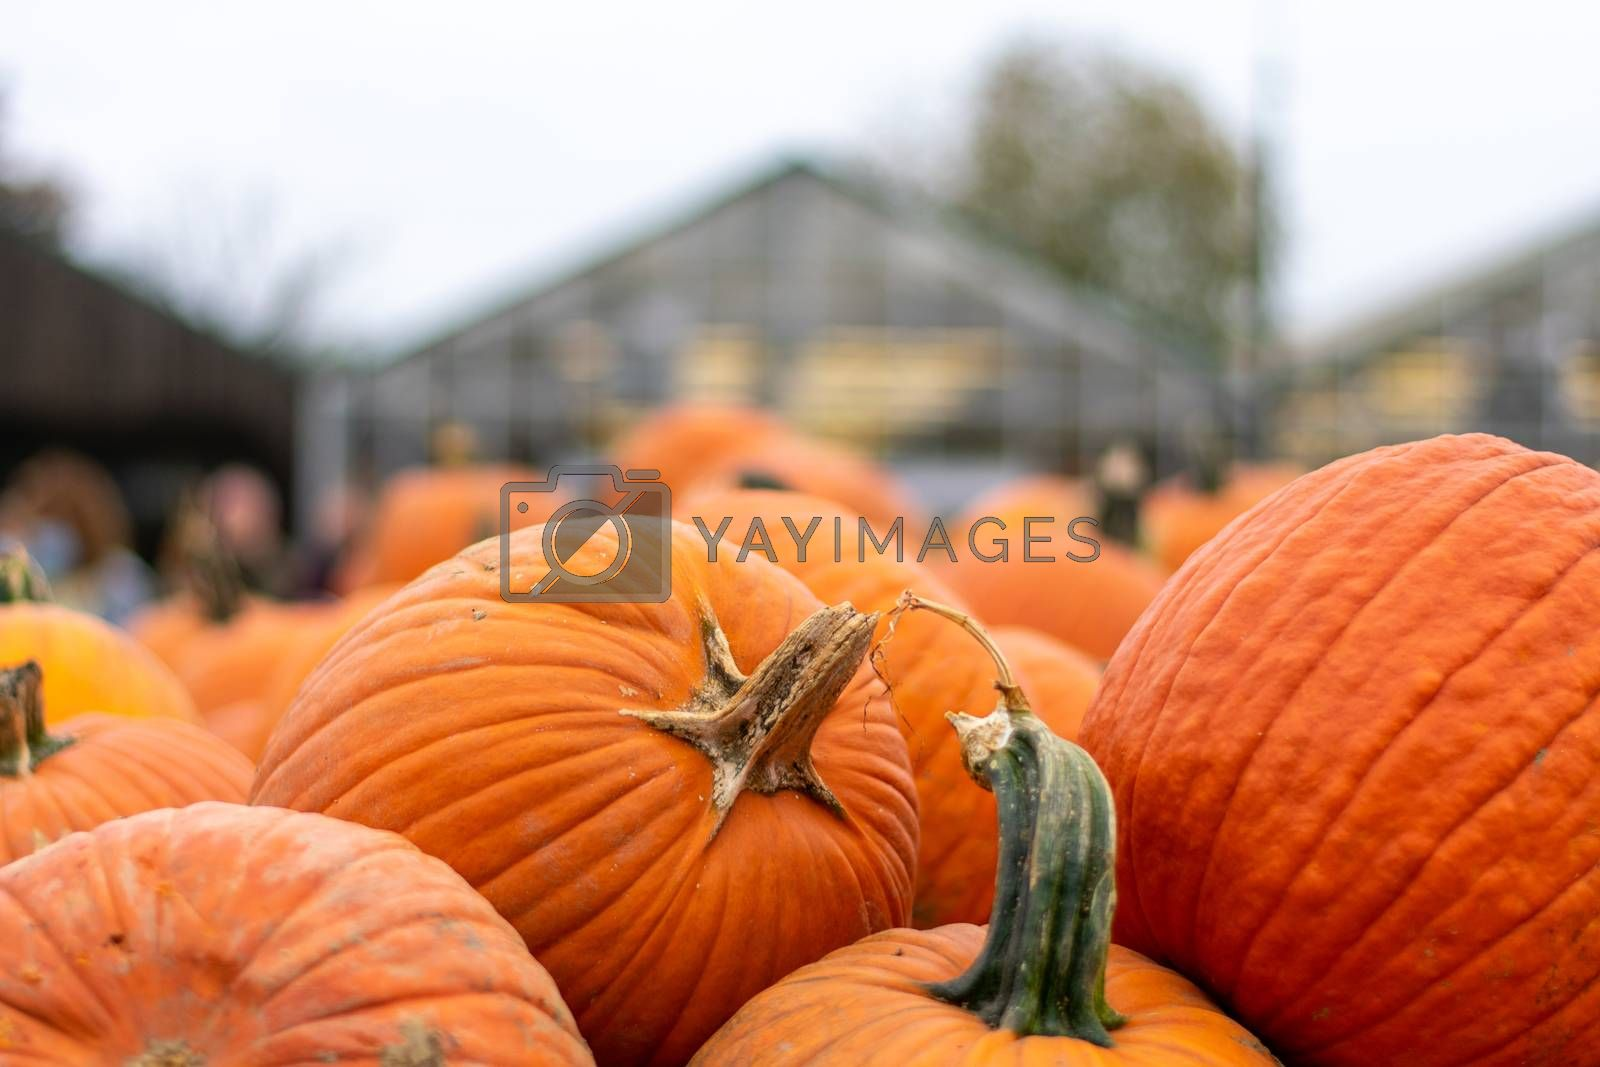 Large Orange Pumpkins in a Pile at a Farmer's Market With a Greenhouse Behind Them